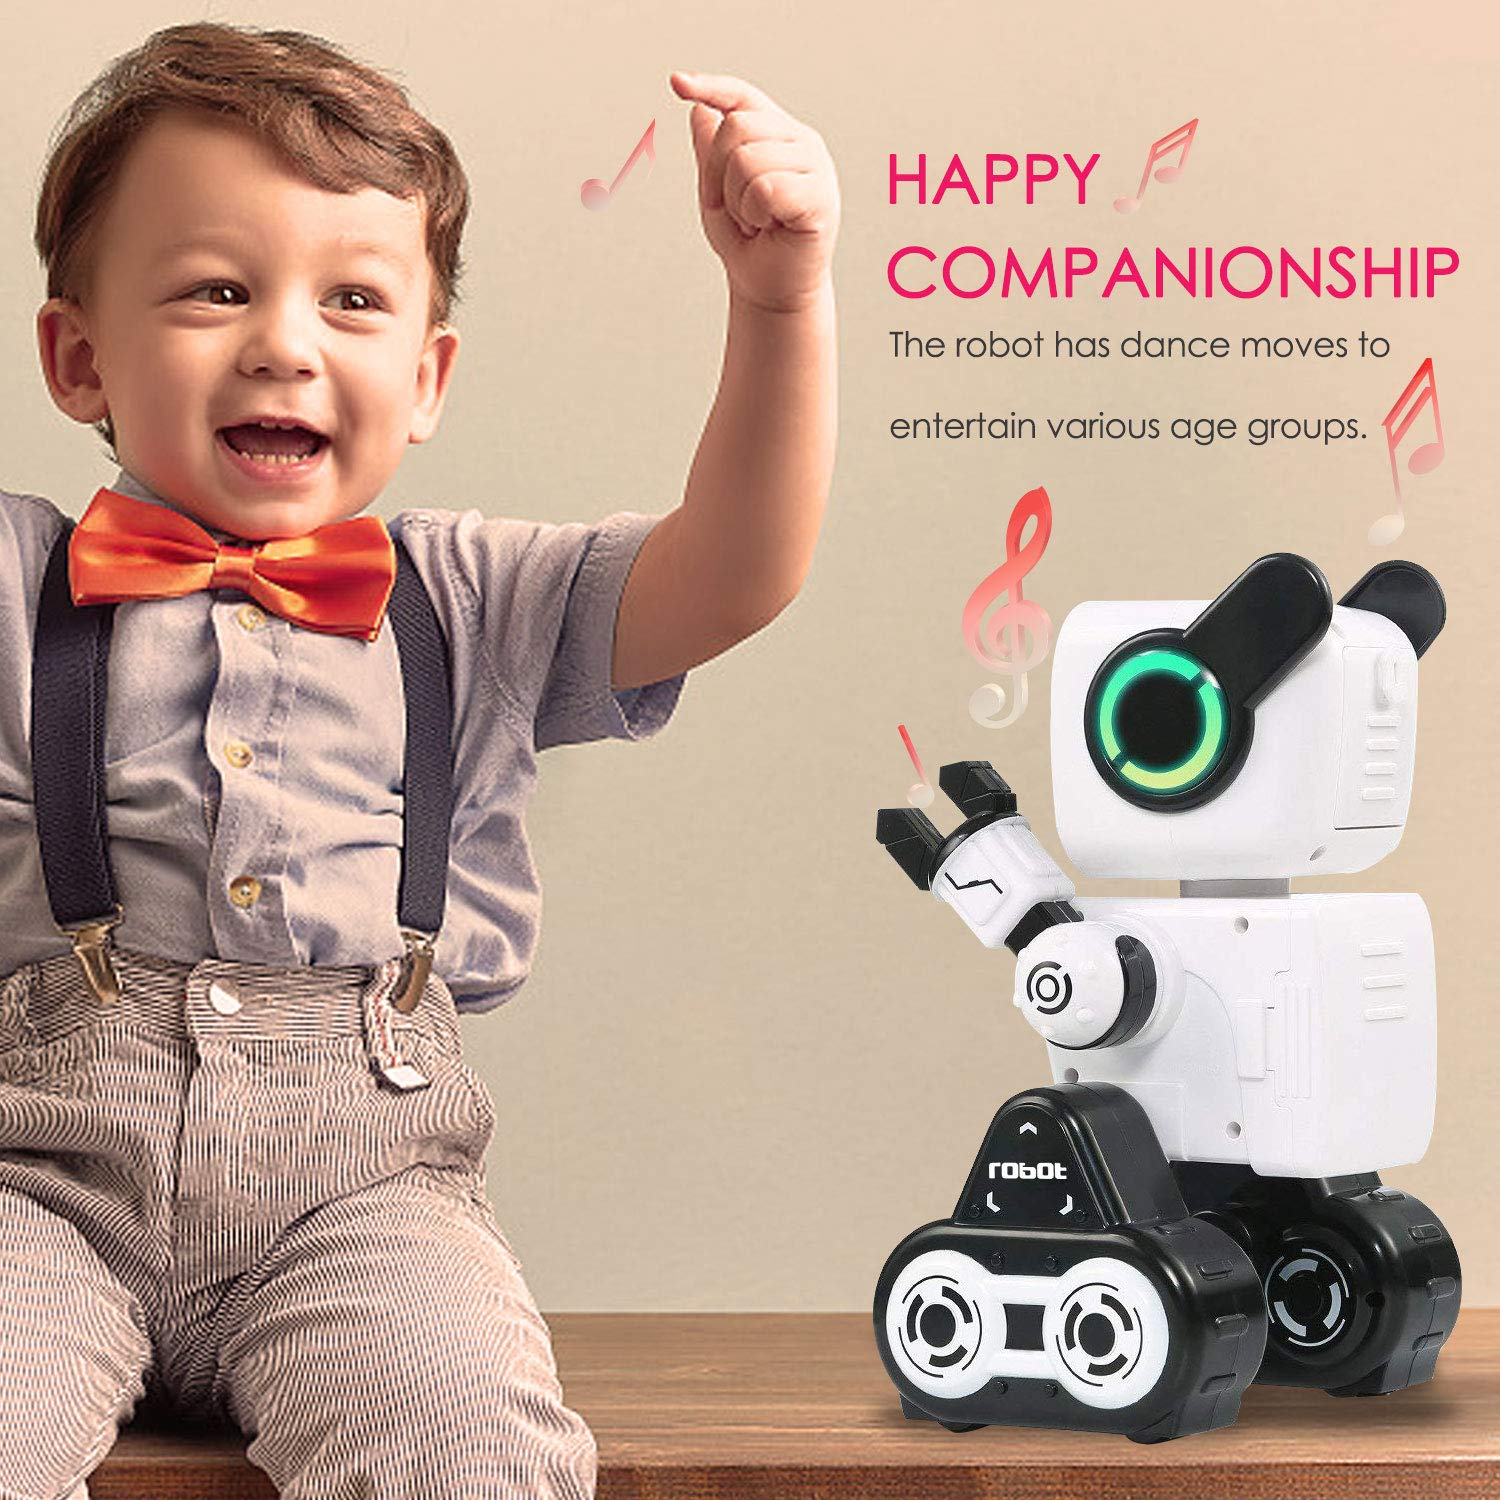 Remote Control Toy Robot for kids,Touch & Sound Control, Speaks, Dance Moves, Plays Music, Light-up Eyes & Mouth. Built-in Coin Bank. Programmable, Rechargeable RC Robot Kit for Boys, Girls All Ages. by IHBUDS (Image #6)